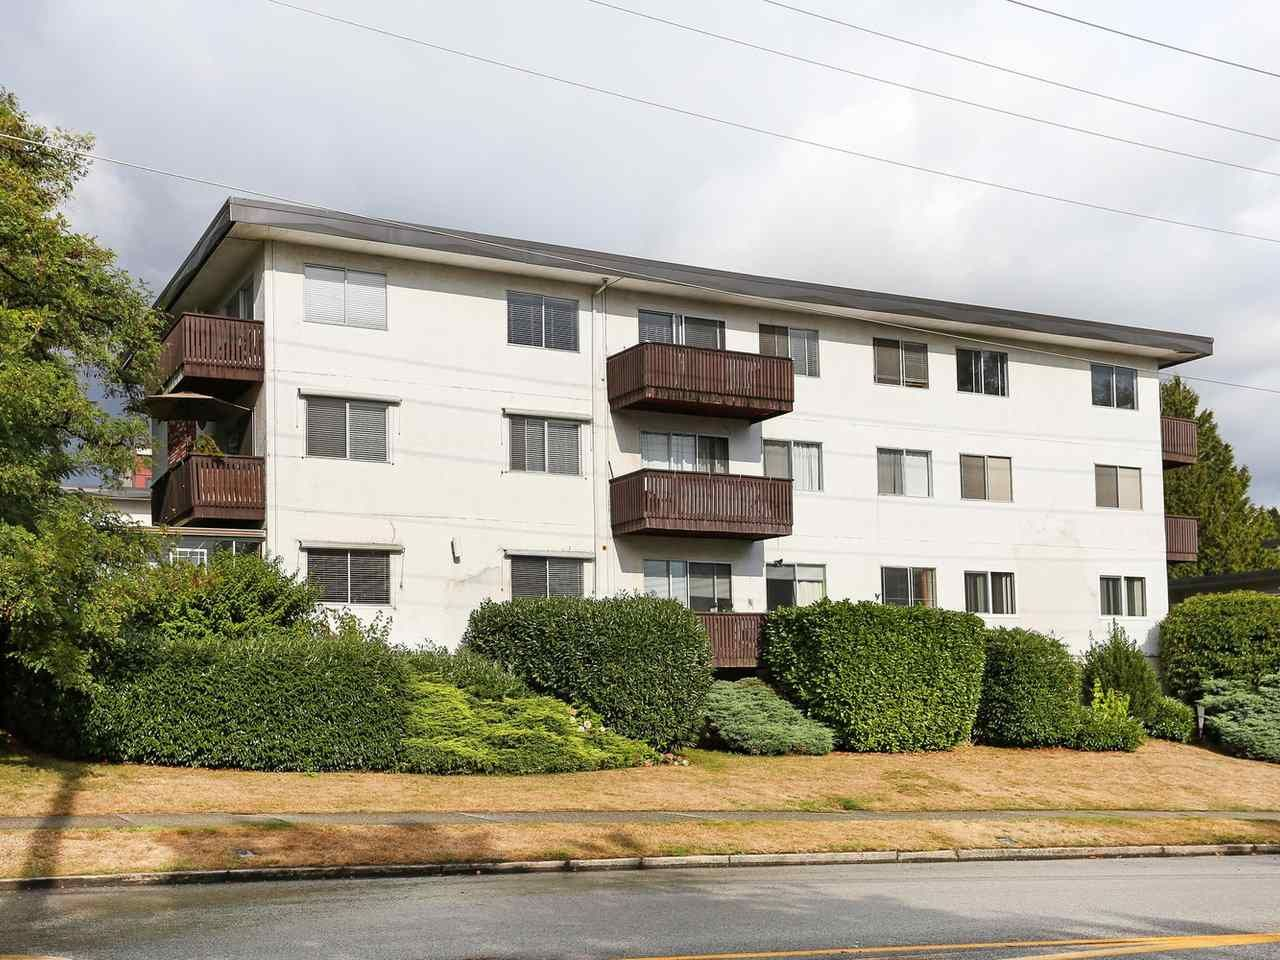 """Main Photo: 205 910 FIFTH Avenue in New Westminster: Uptown NW Condo for sale in """"Grosvenor Court"""" : MLS®# R2426702"""